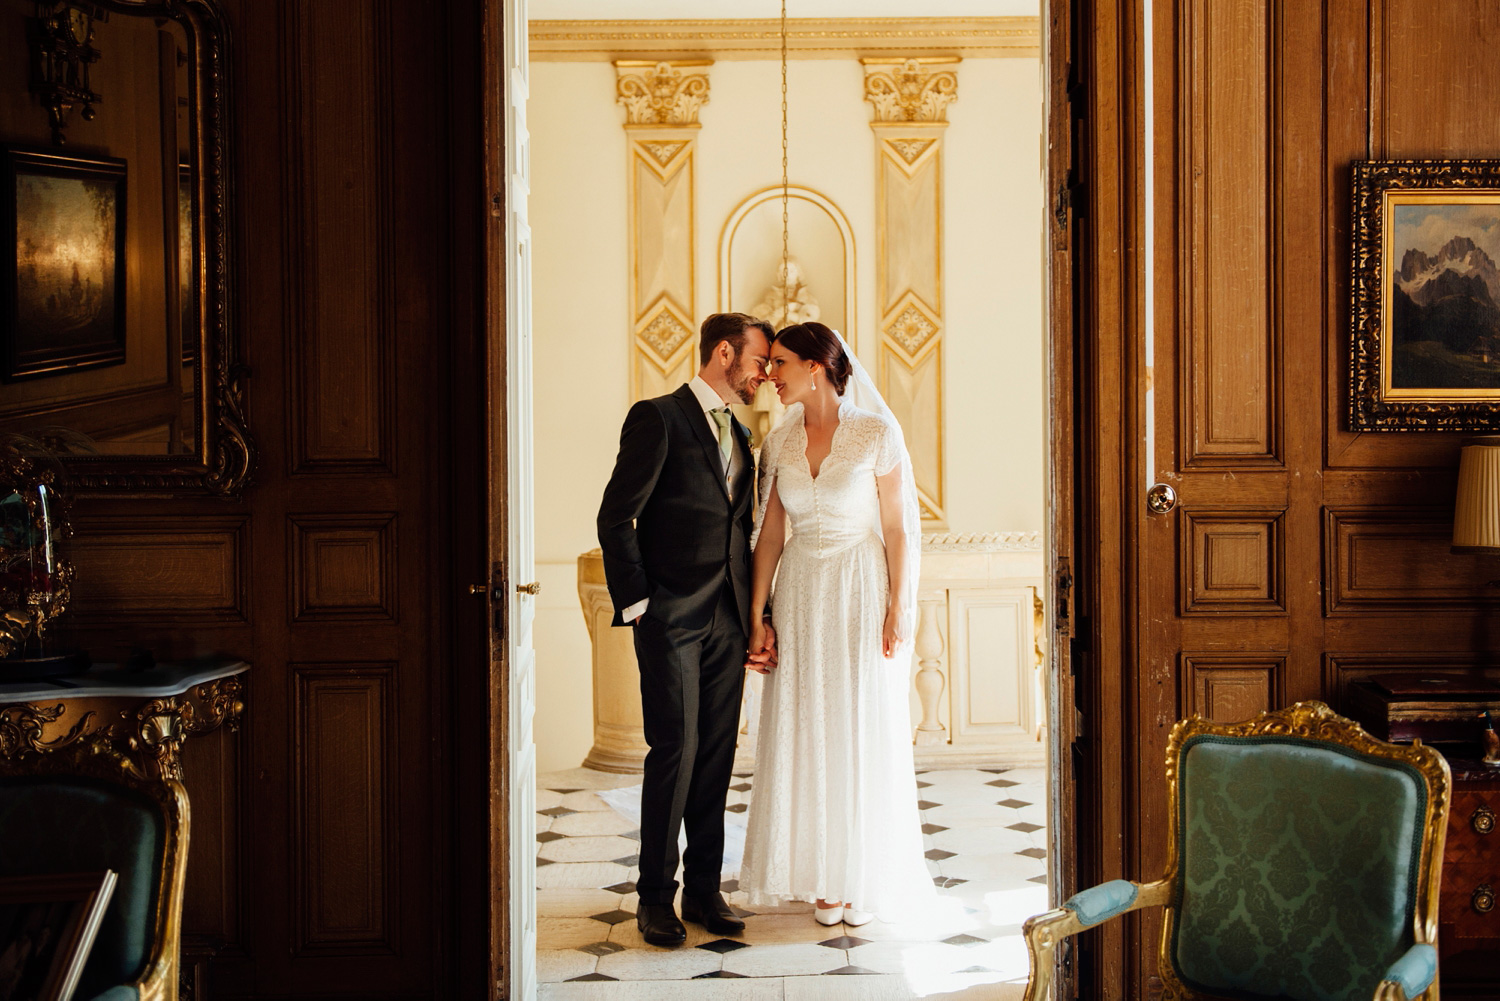 Katie_Mitchell_Photography_A&P_France_Chateau_Wedding_La_Durantie_33.jpg